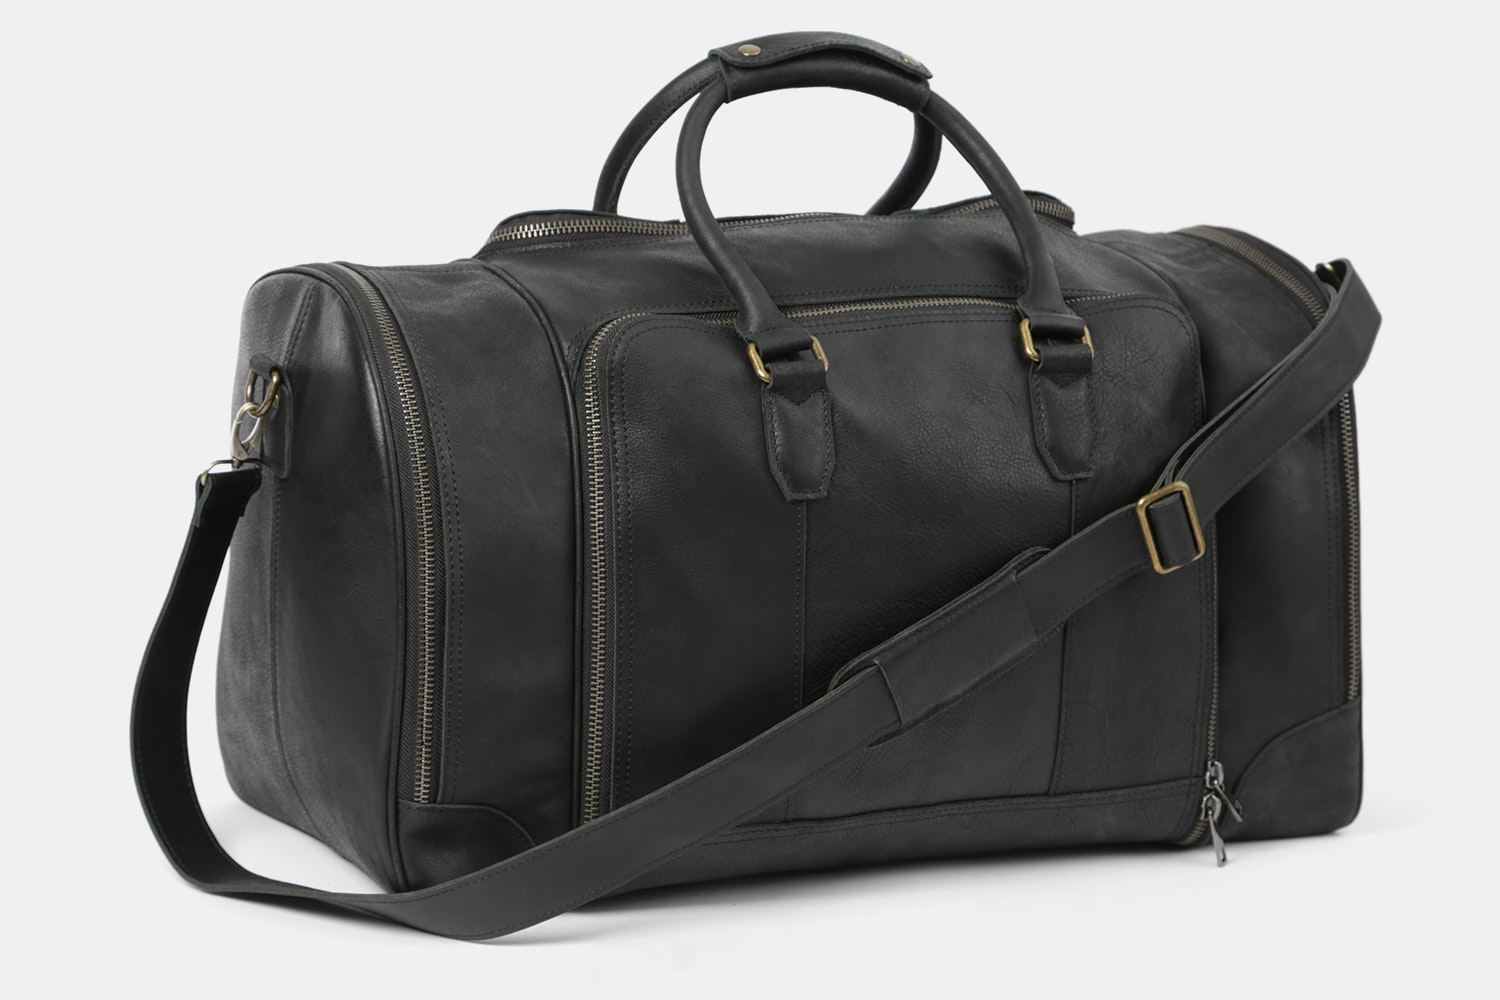 Black Bag with Silver-colored Hardware